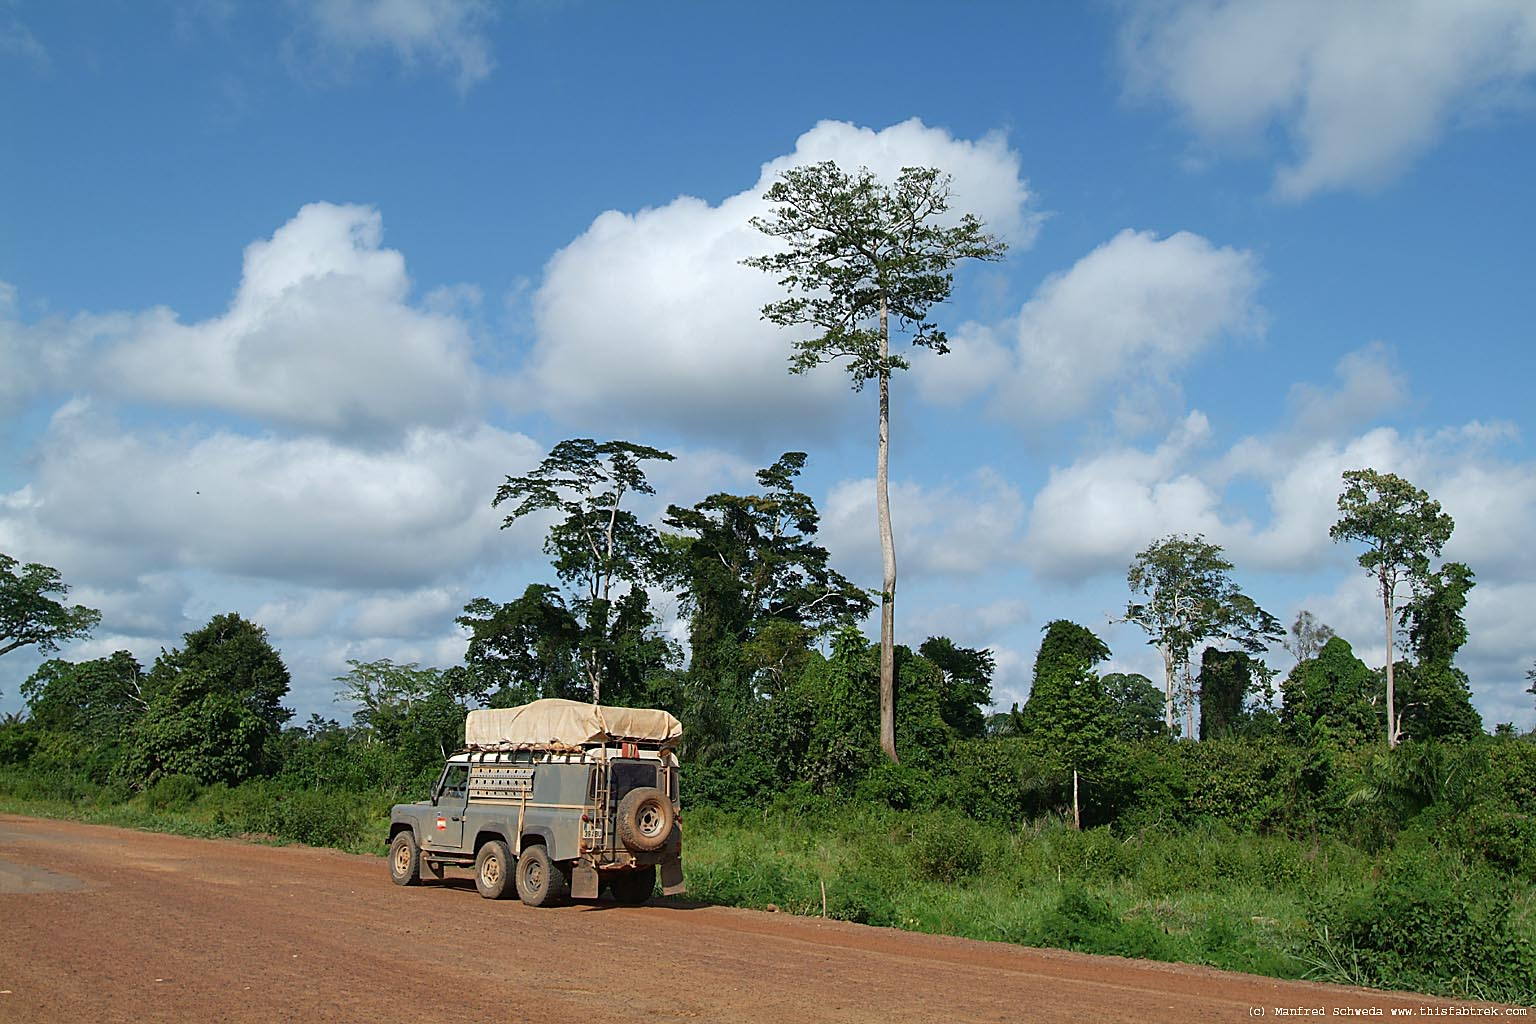 6x6 Land Rover in Cote d'Ivoire. No trees.